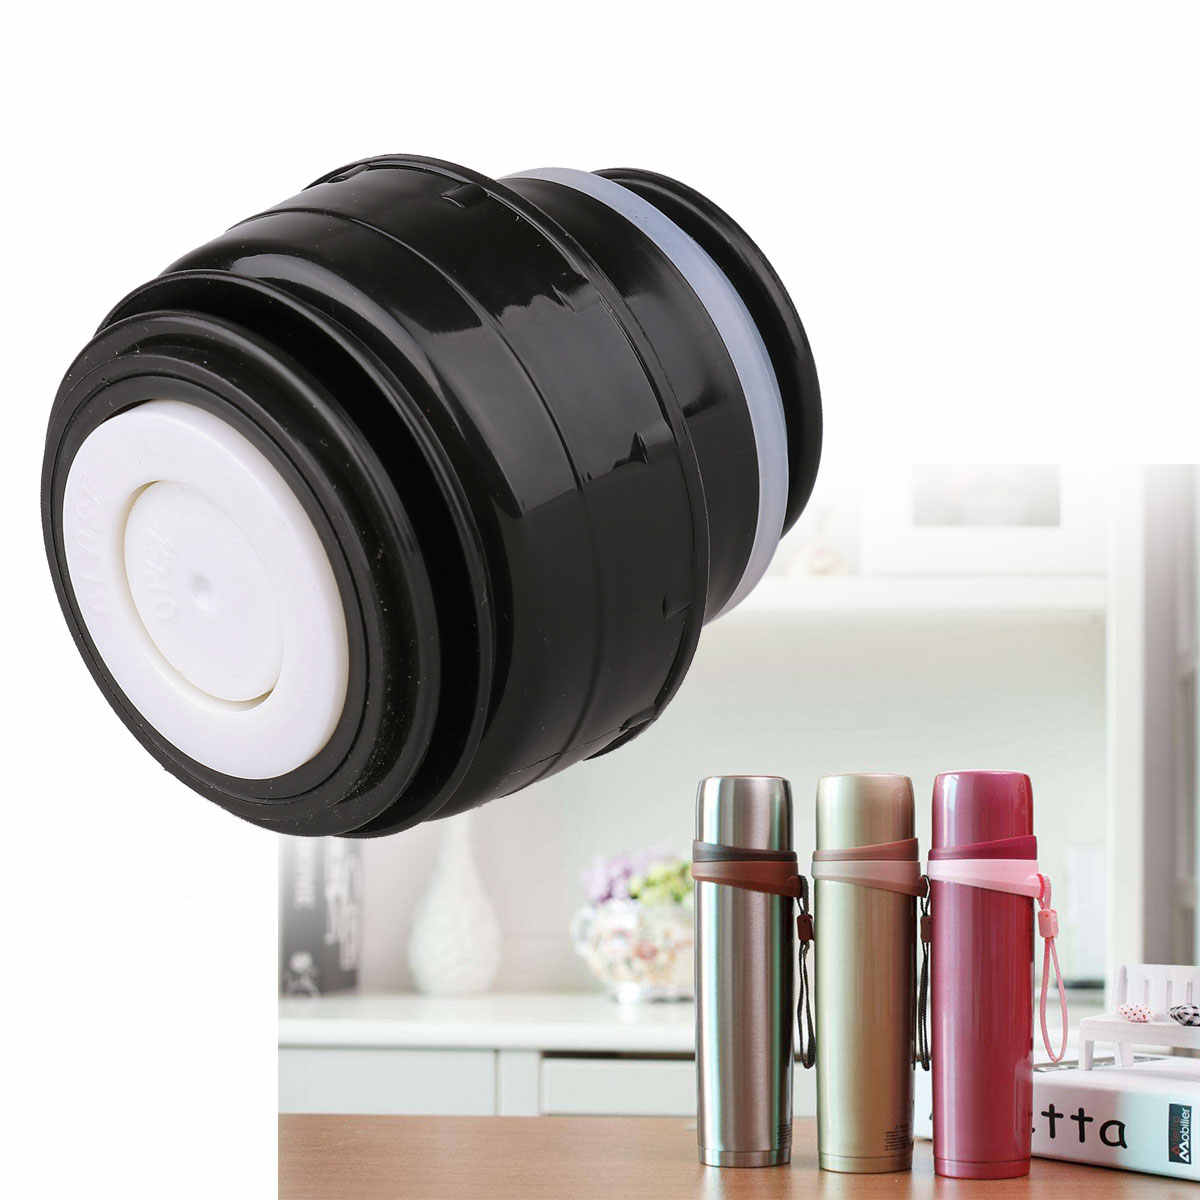 4.5/5.2cm Thermos Bottle Cover Thermo Cap Outlet Cup Mug Stopper Thermal Cup Lid Bullet Flask Empty Covers Thermose Accessories